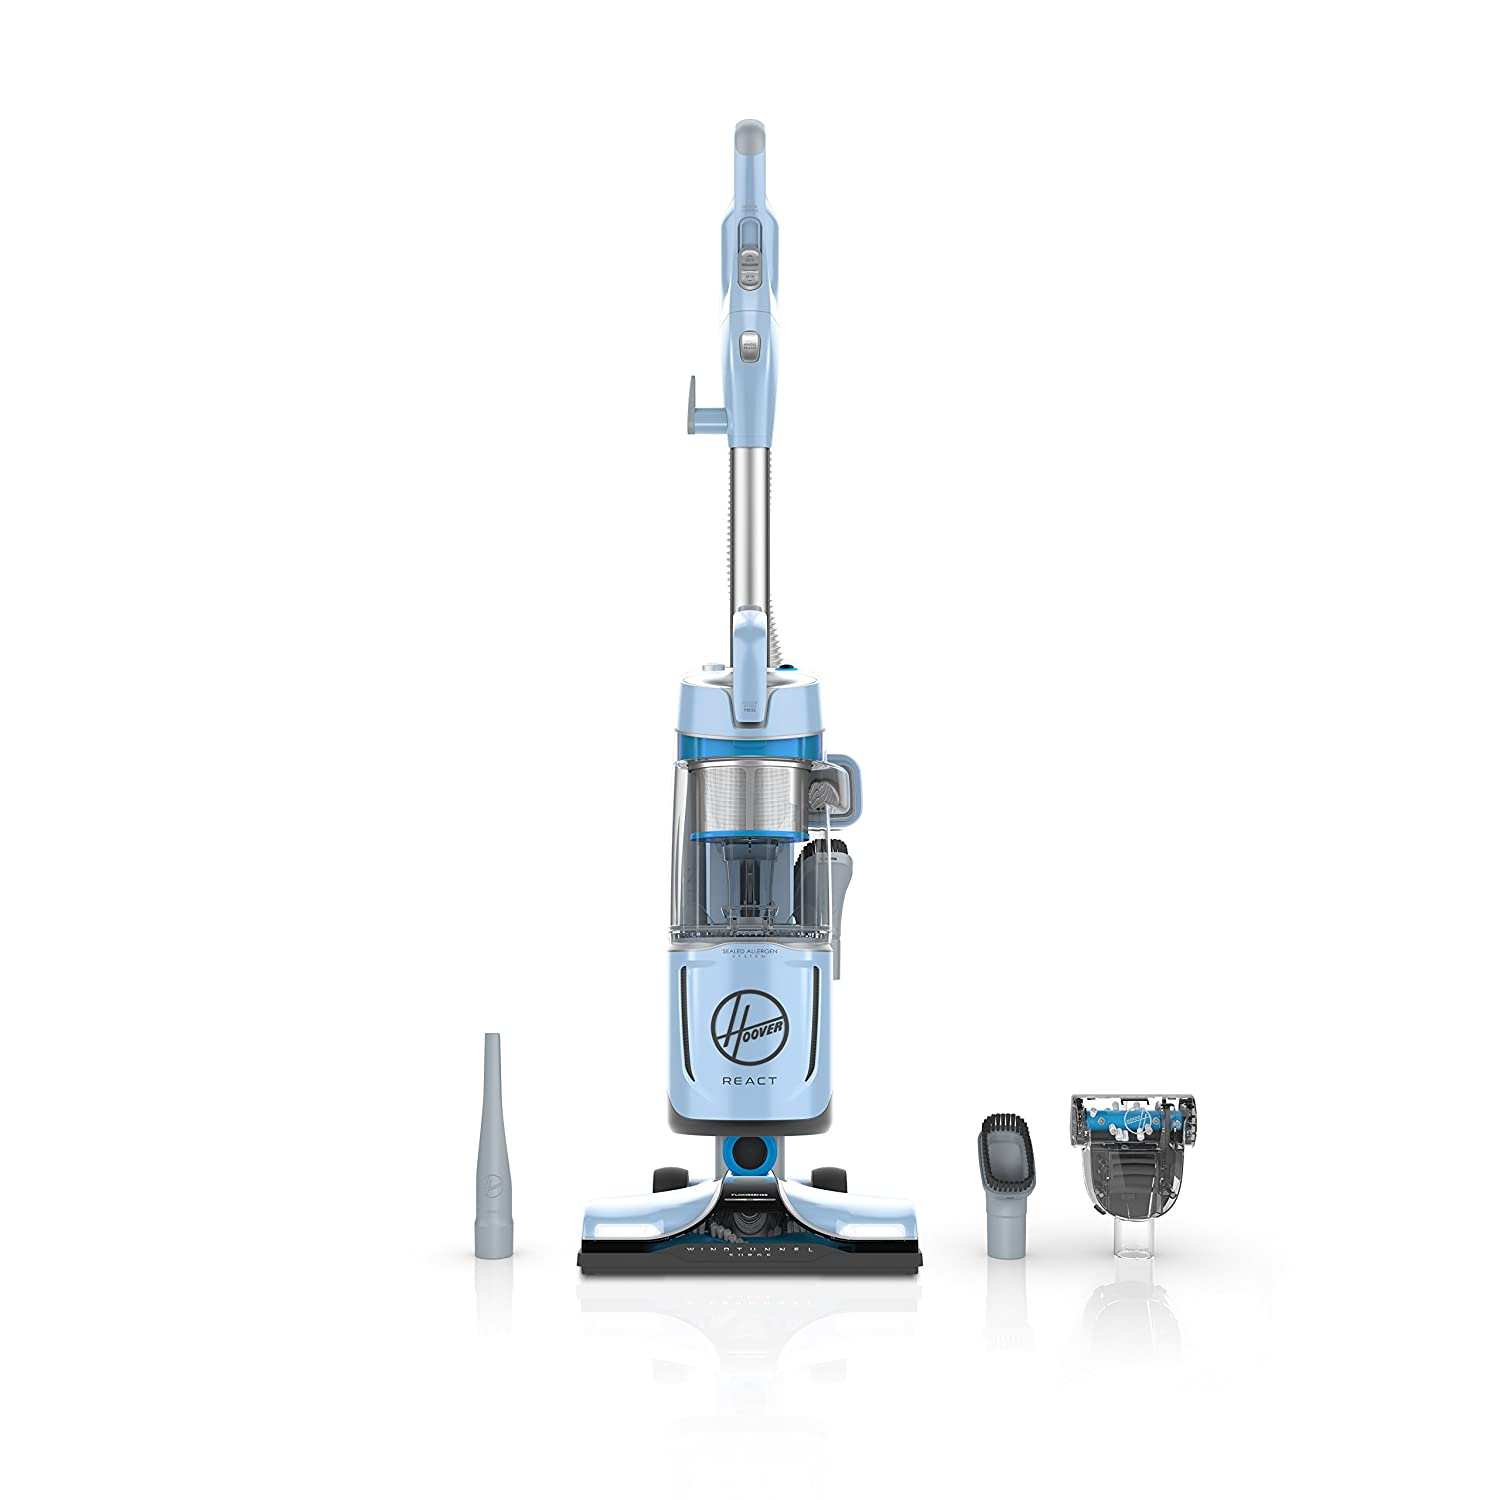 Hoover React QuickLift Bagless Upright Vacuum Blue